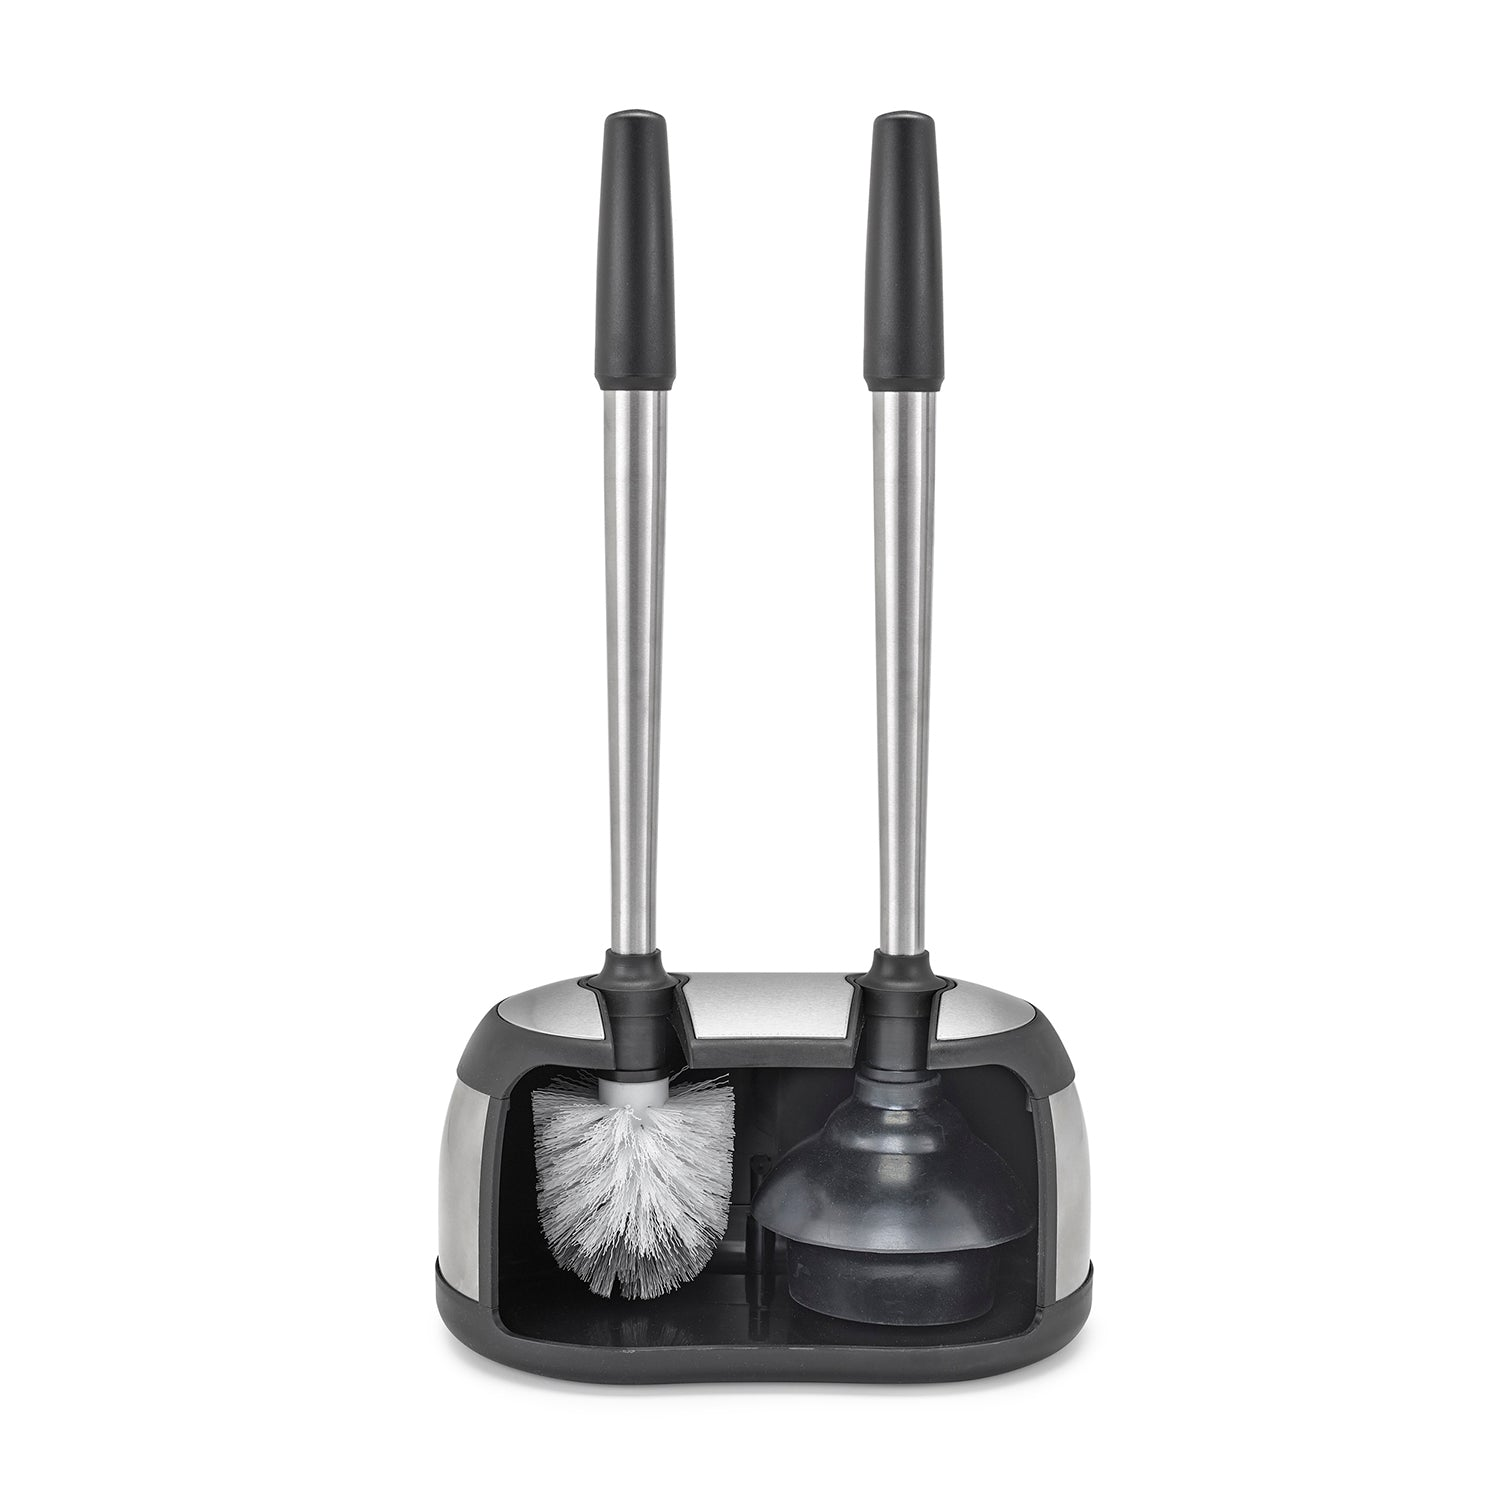 Toilet Brush & Plunger Caddy